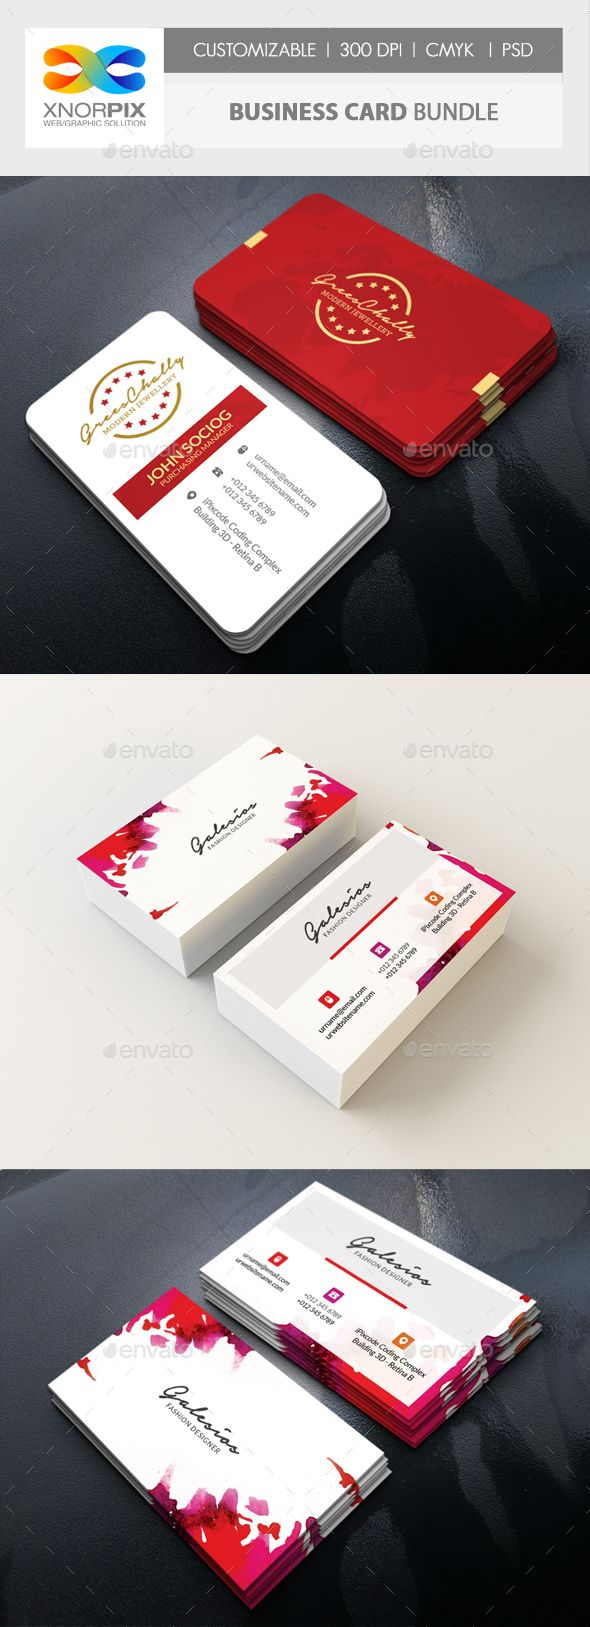 406 best Business Card images on Pinterest | Business card design ...